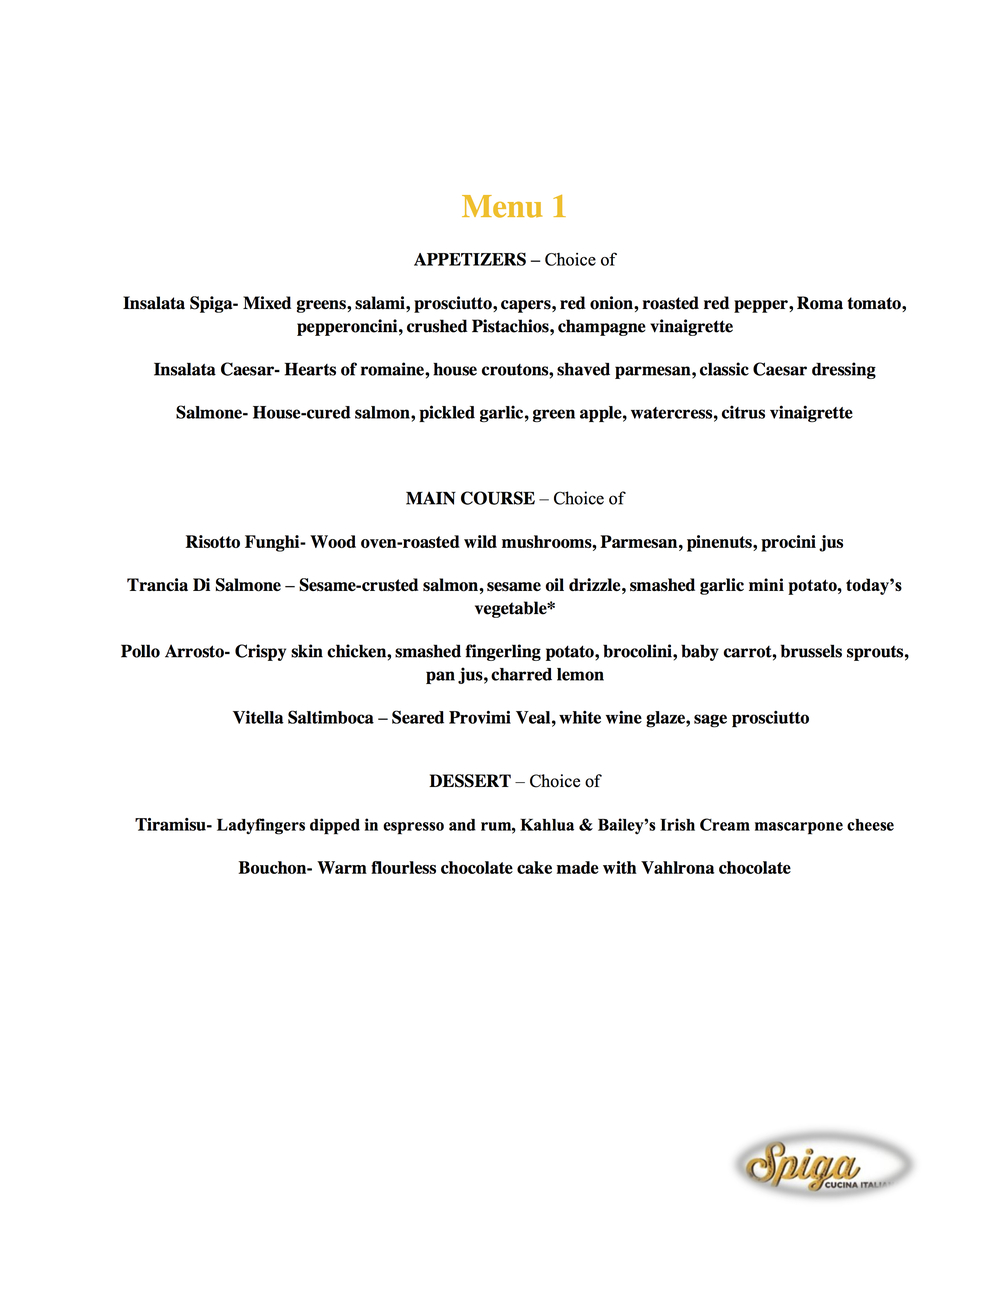 revised dinner group menus 1.jpg